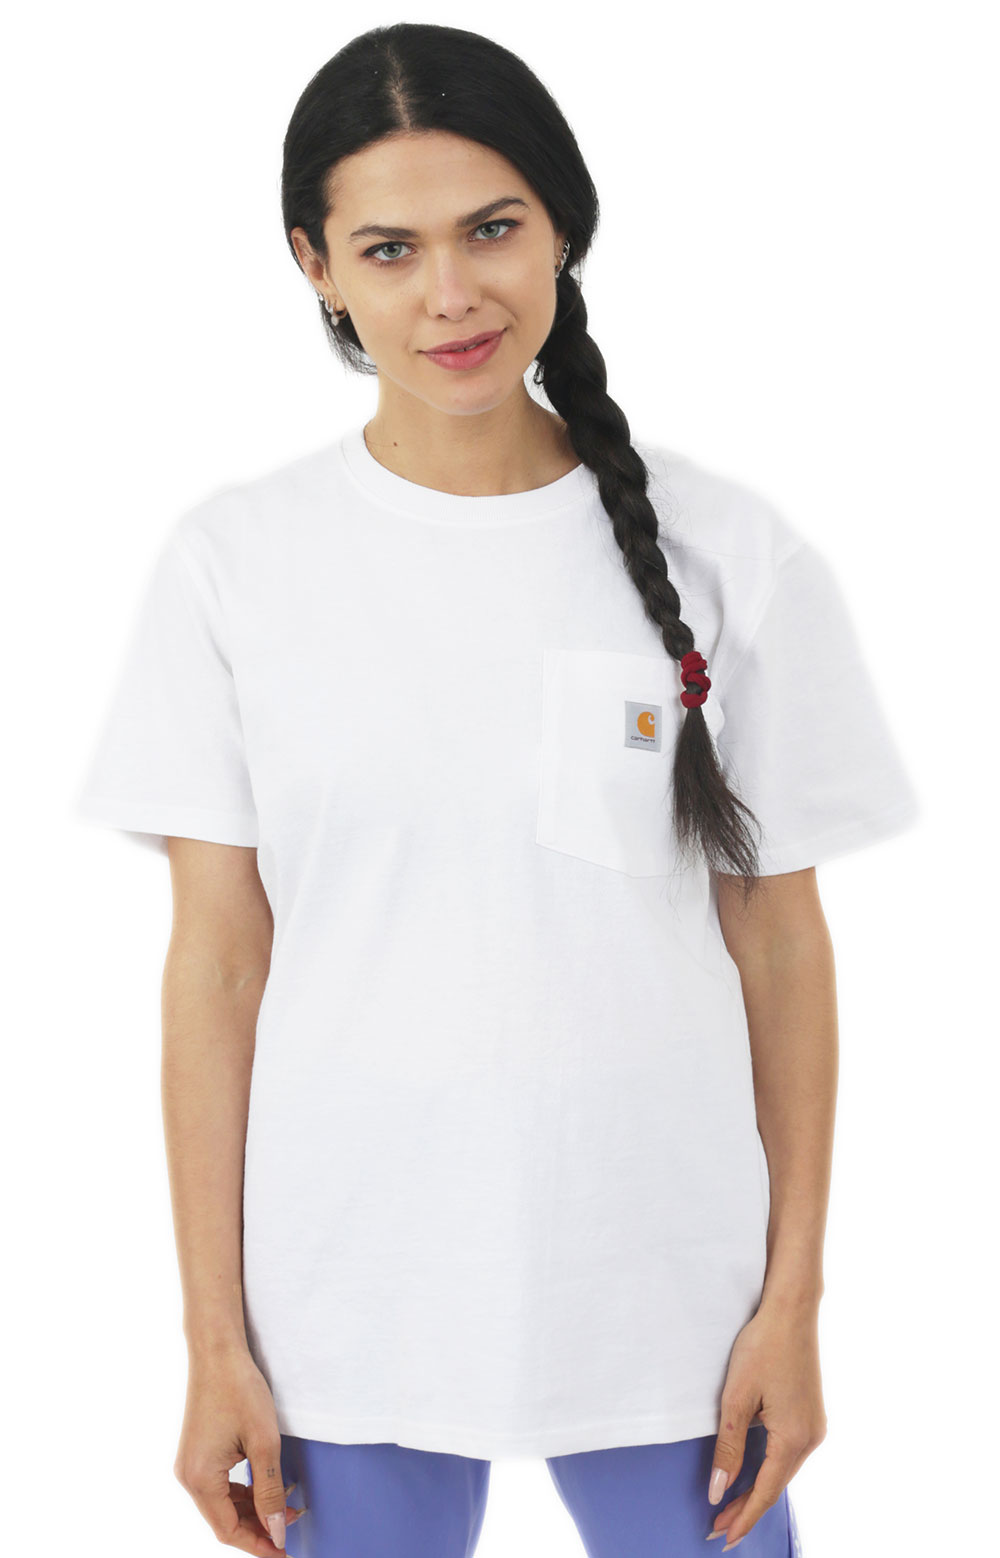 Carhartt Womens, (103067) WK87 Workwear Pocket T-Shirt - White